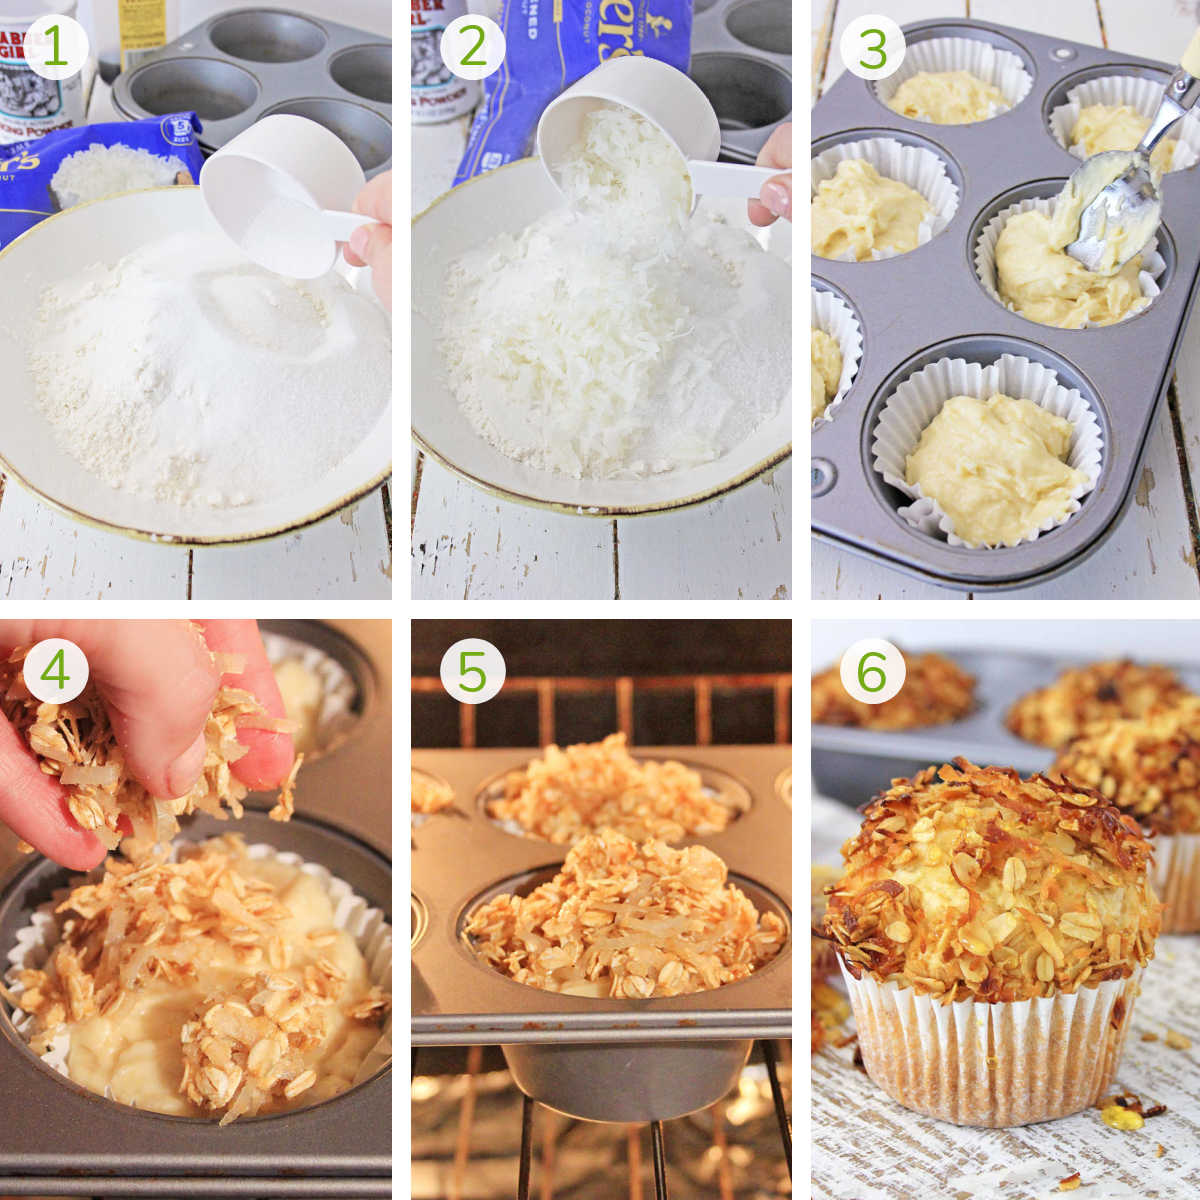 process photos showing combining the wet and dry ingredients, adding it to muffin tins and topping with toasted coconut.